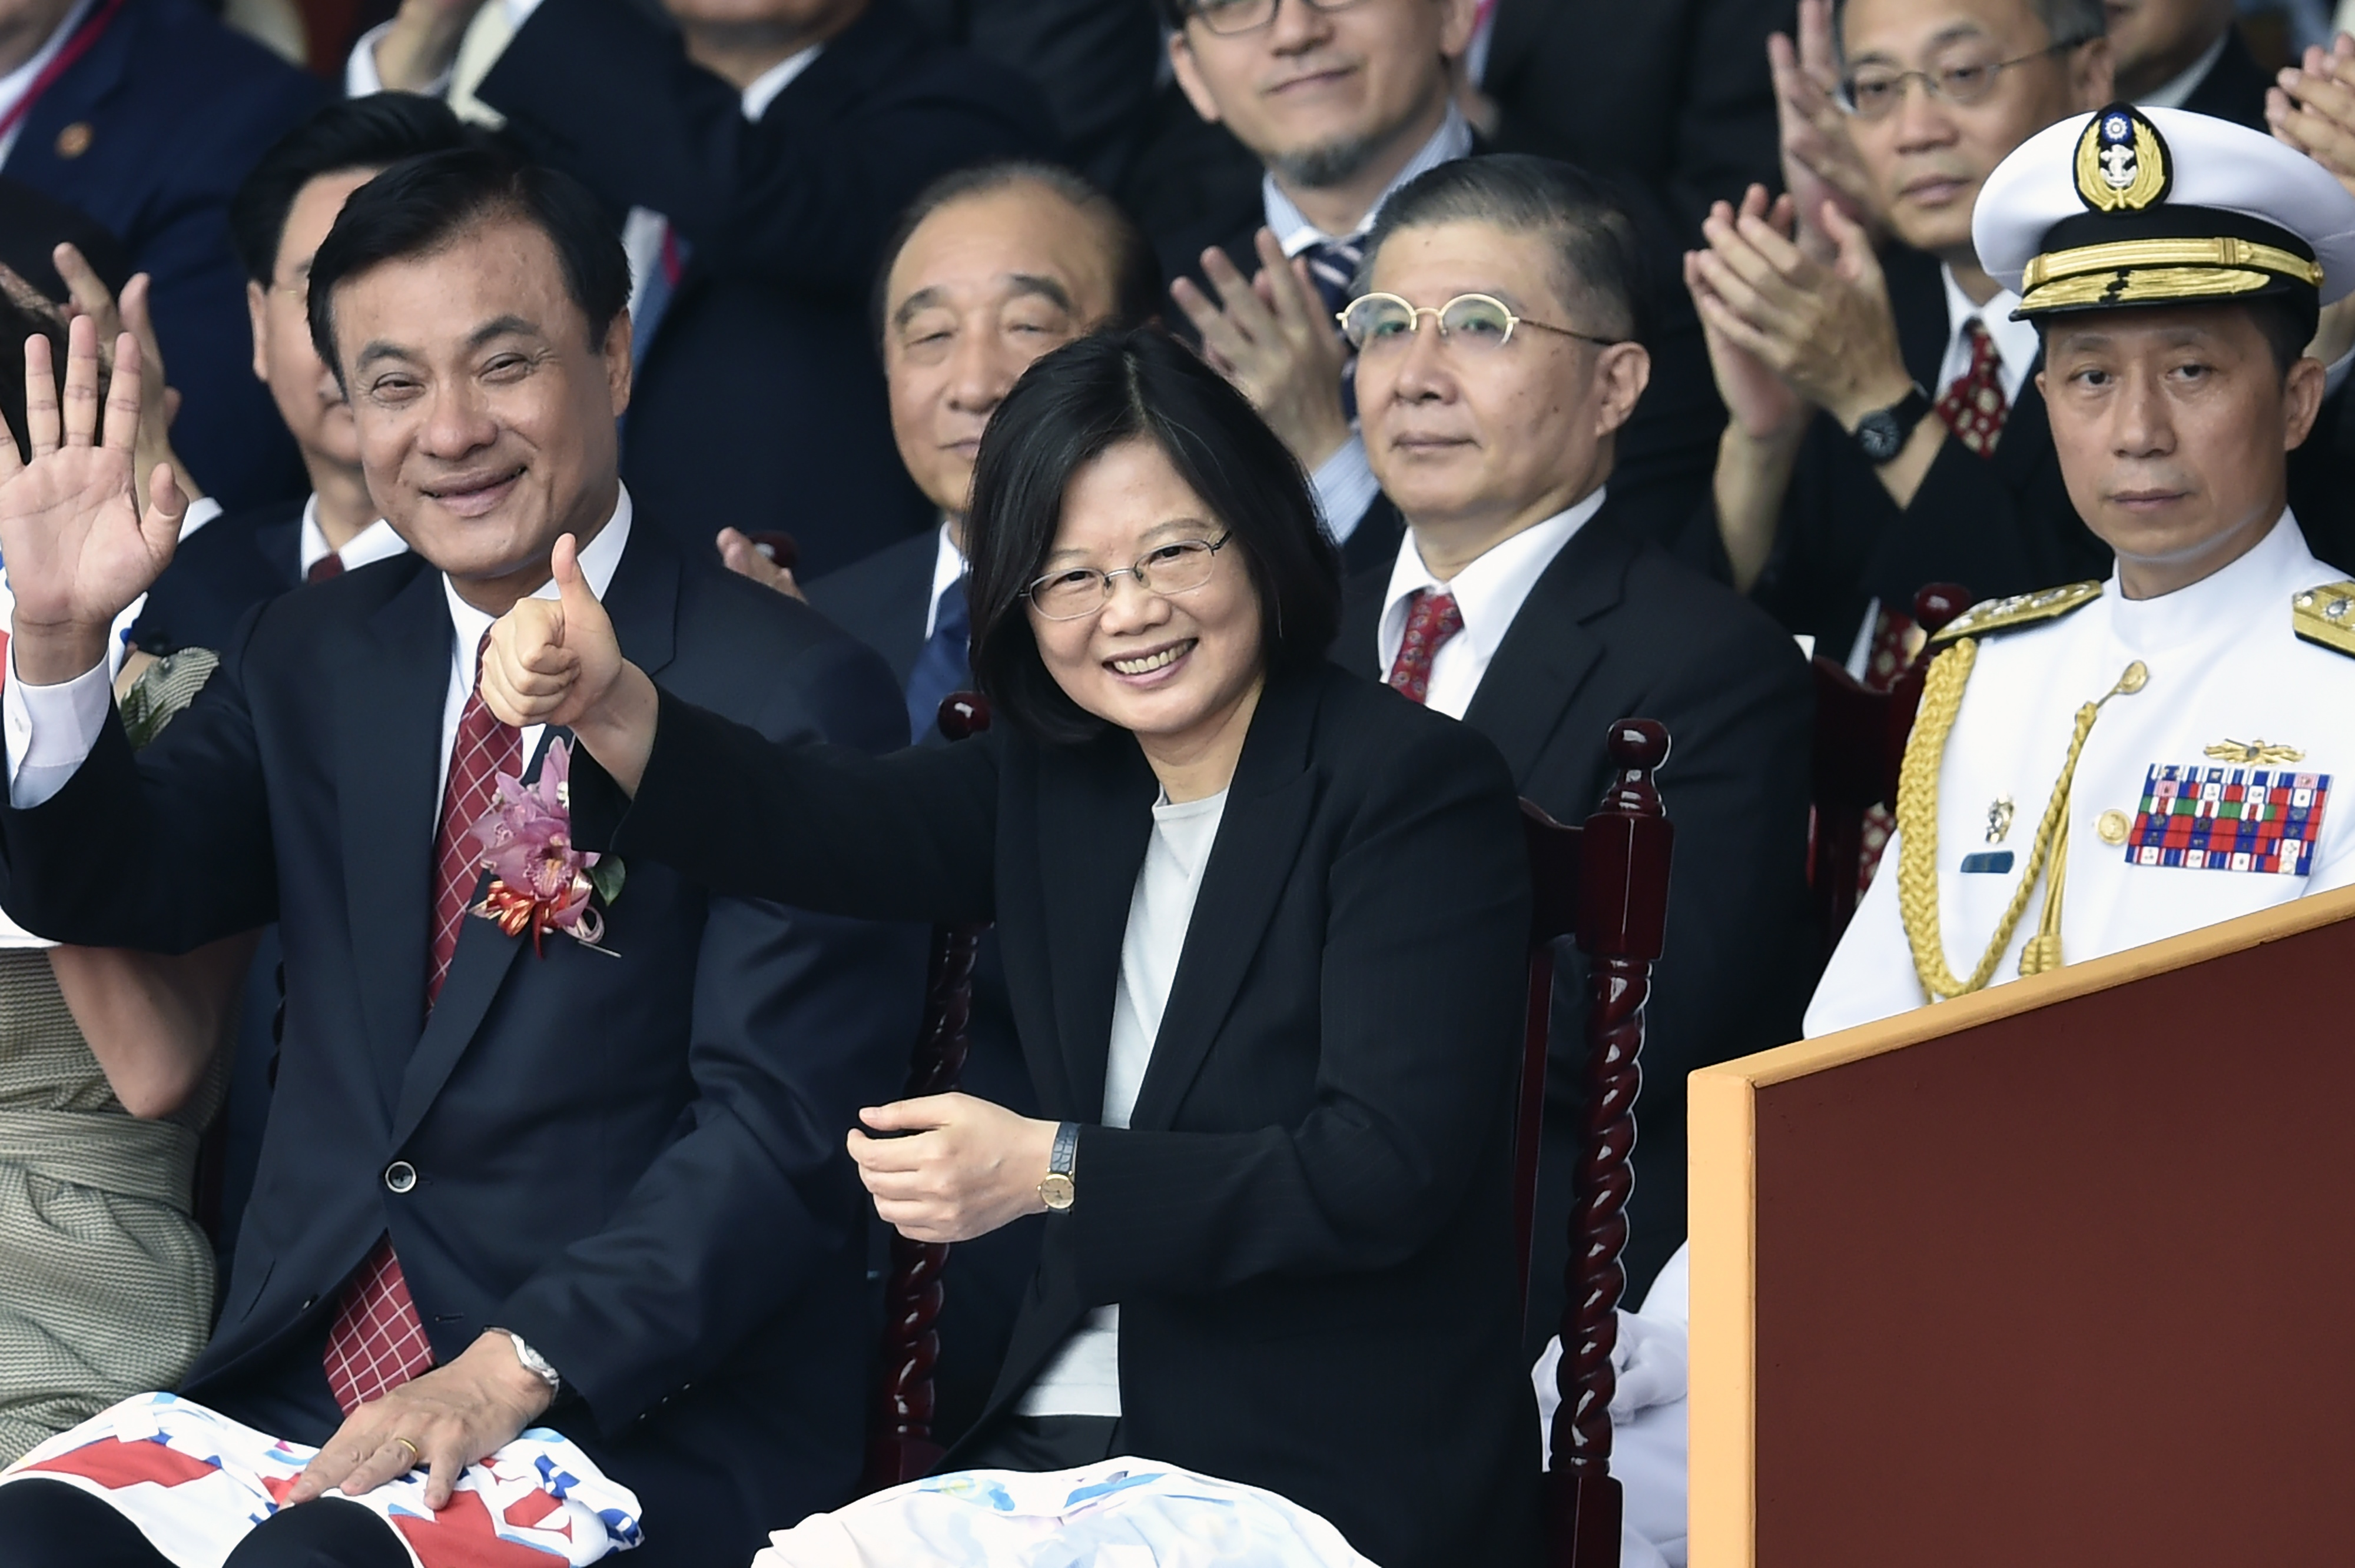 Taiwan President Tsai Ing-wen, center, gestures during National Day celebrations in front of the Presidential Palace in Taipei on Oct. 10, 2016. Relations with Beijing have deteriorated under Taiwan's first female President, whose China-skeptic party, the DPP, took office in May after a landslide victory over the KMT